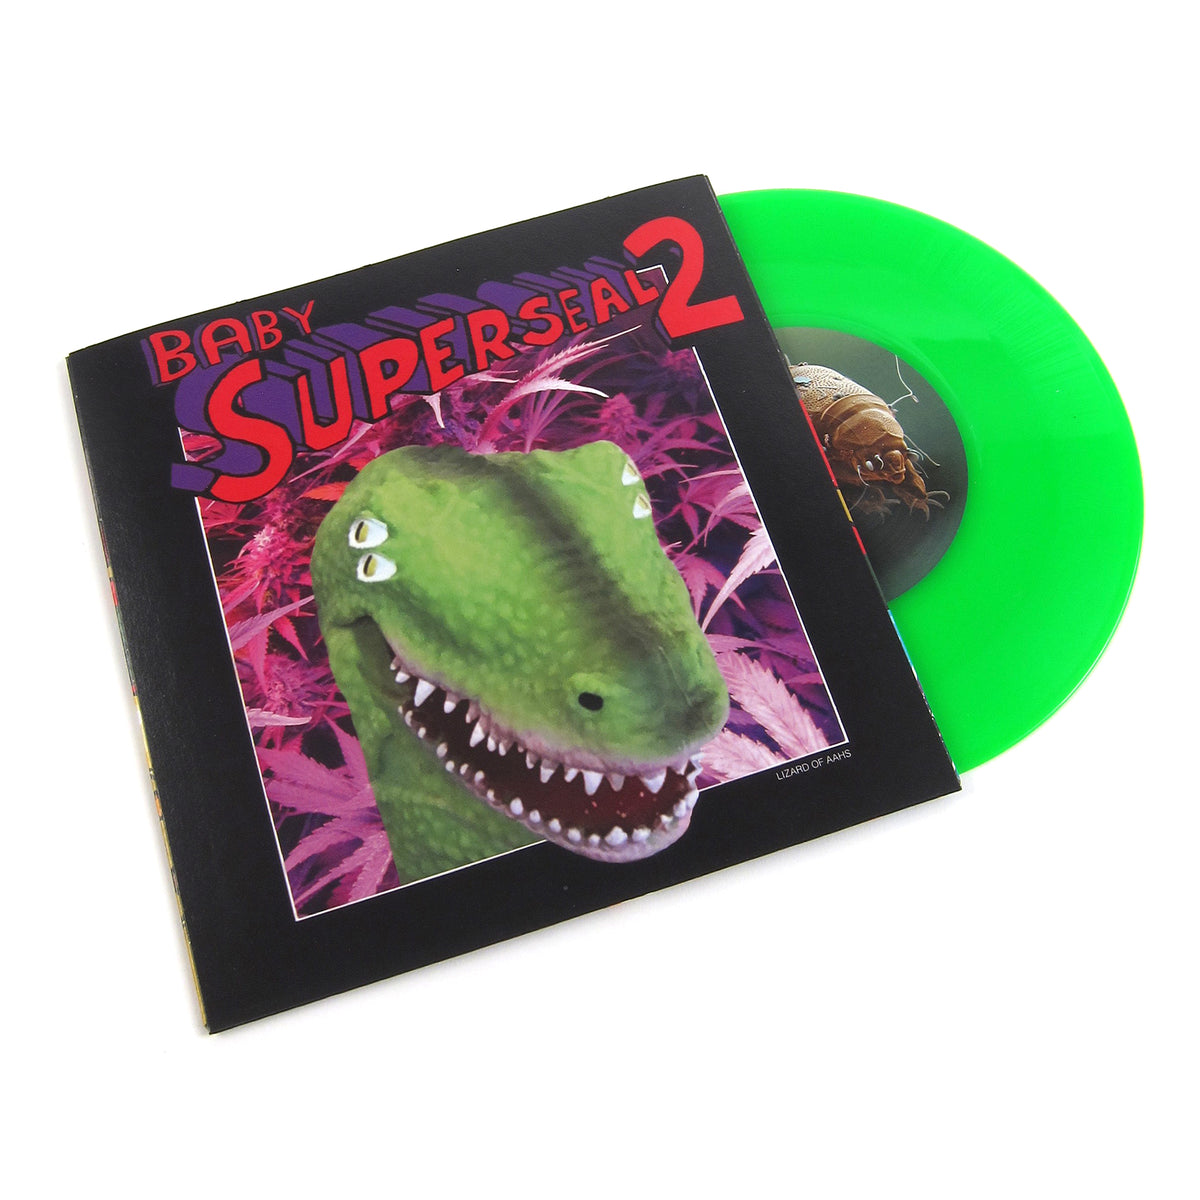 QBert: Baby Superseal 2 RMX (Colored Vinyl) Vinyl 7""